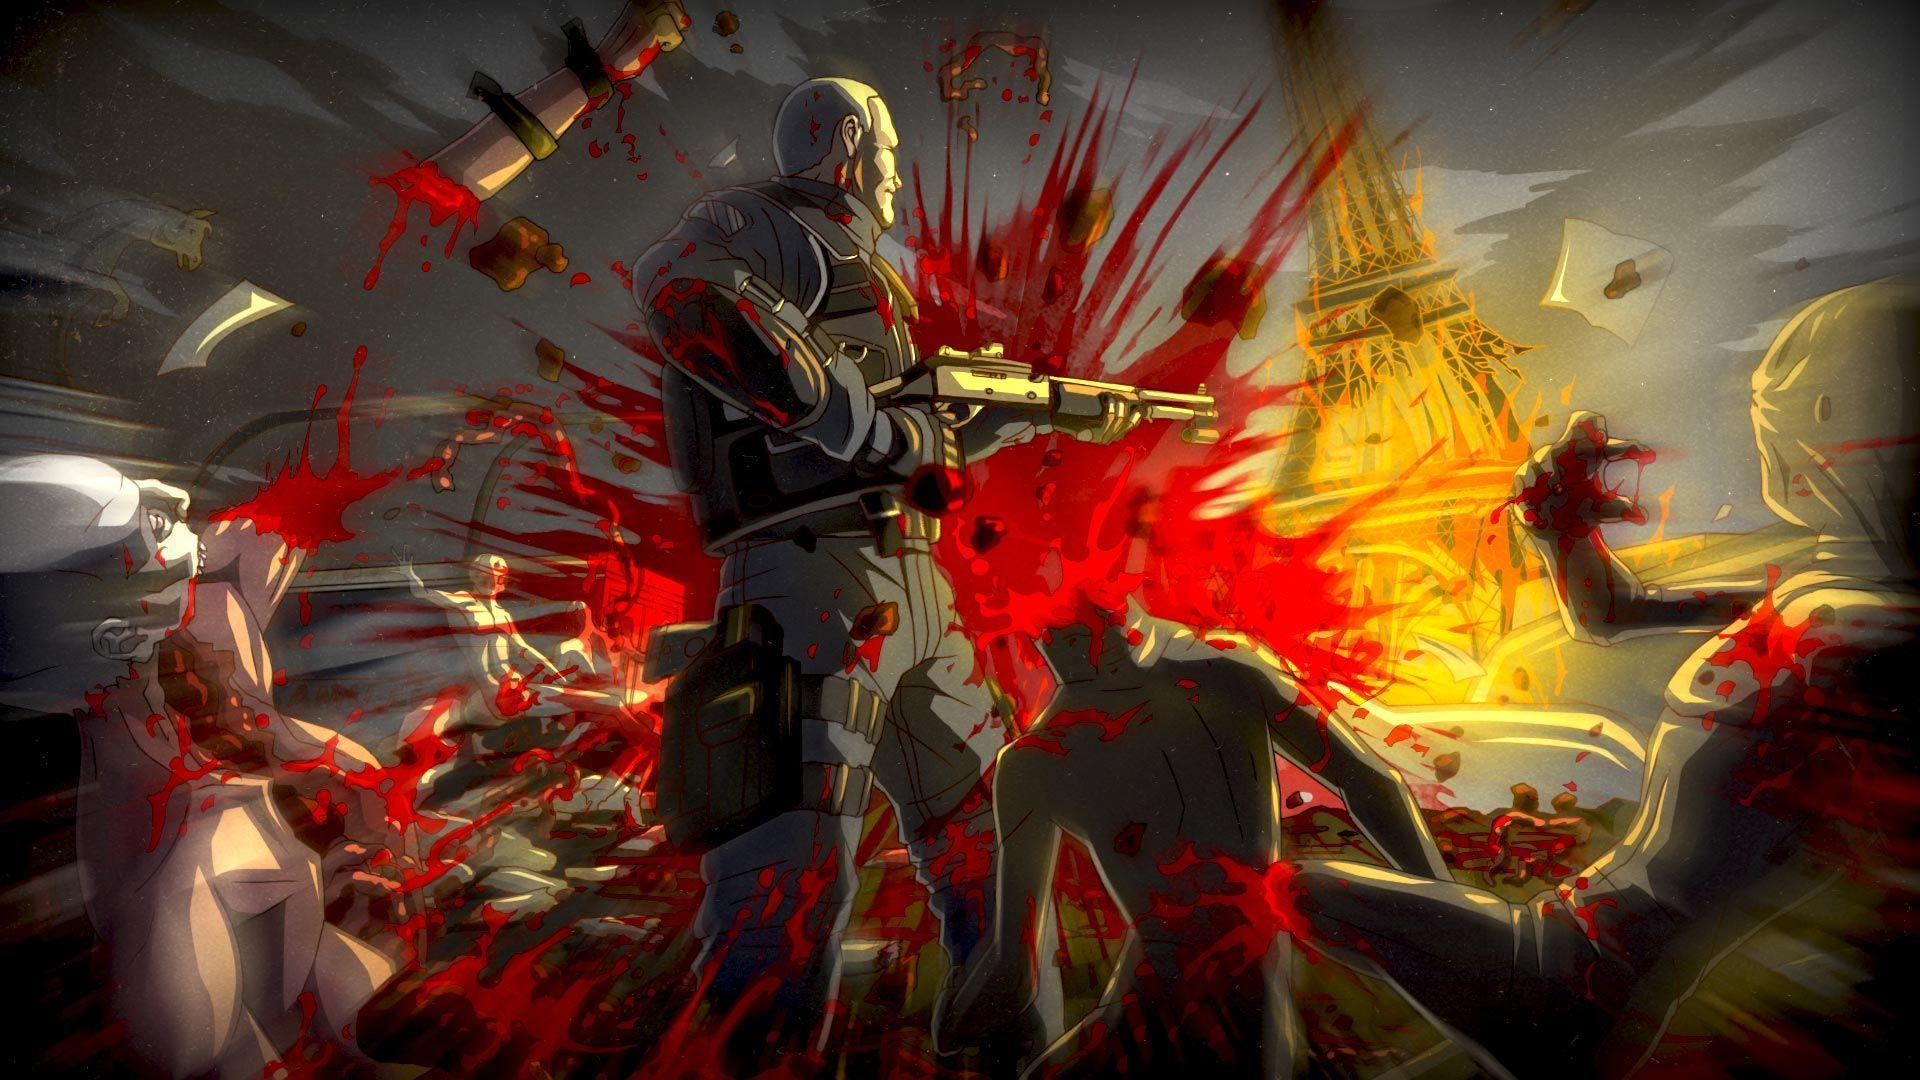 Killing Floor Wallpapers Wallpaper Cave